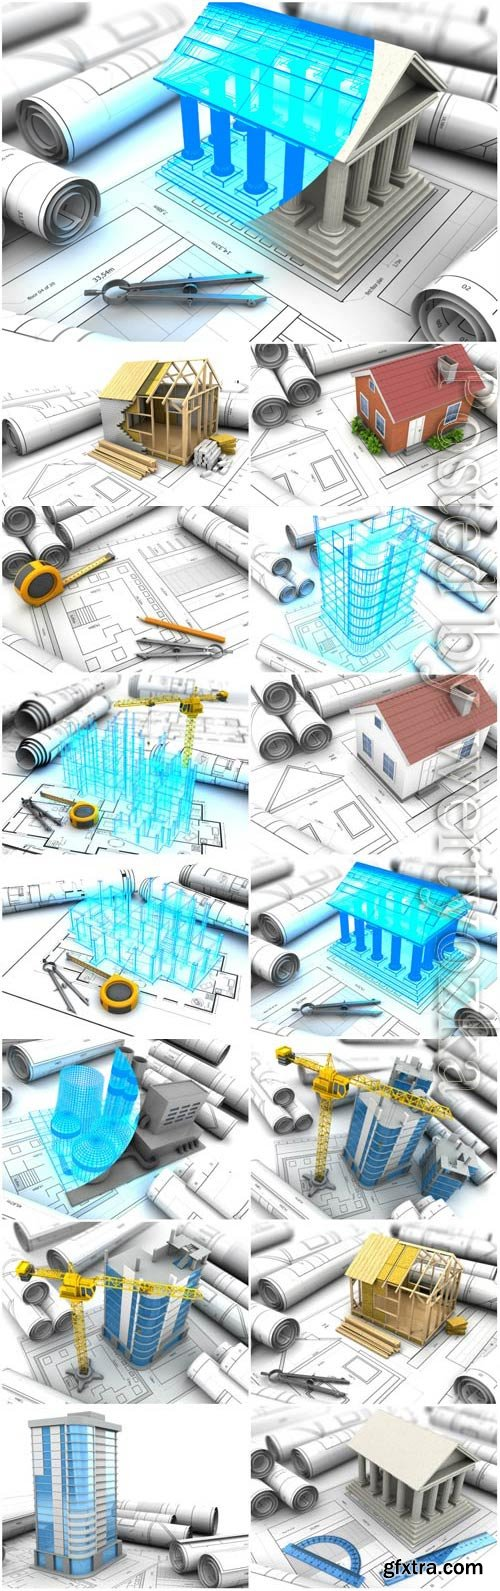 Architecture and construction drawings stock photo